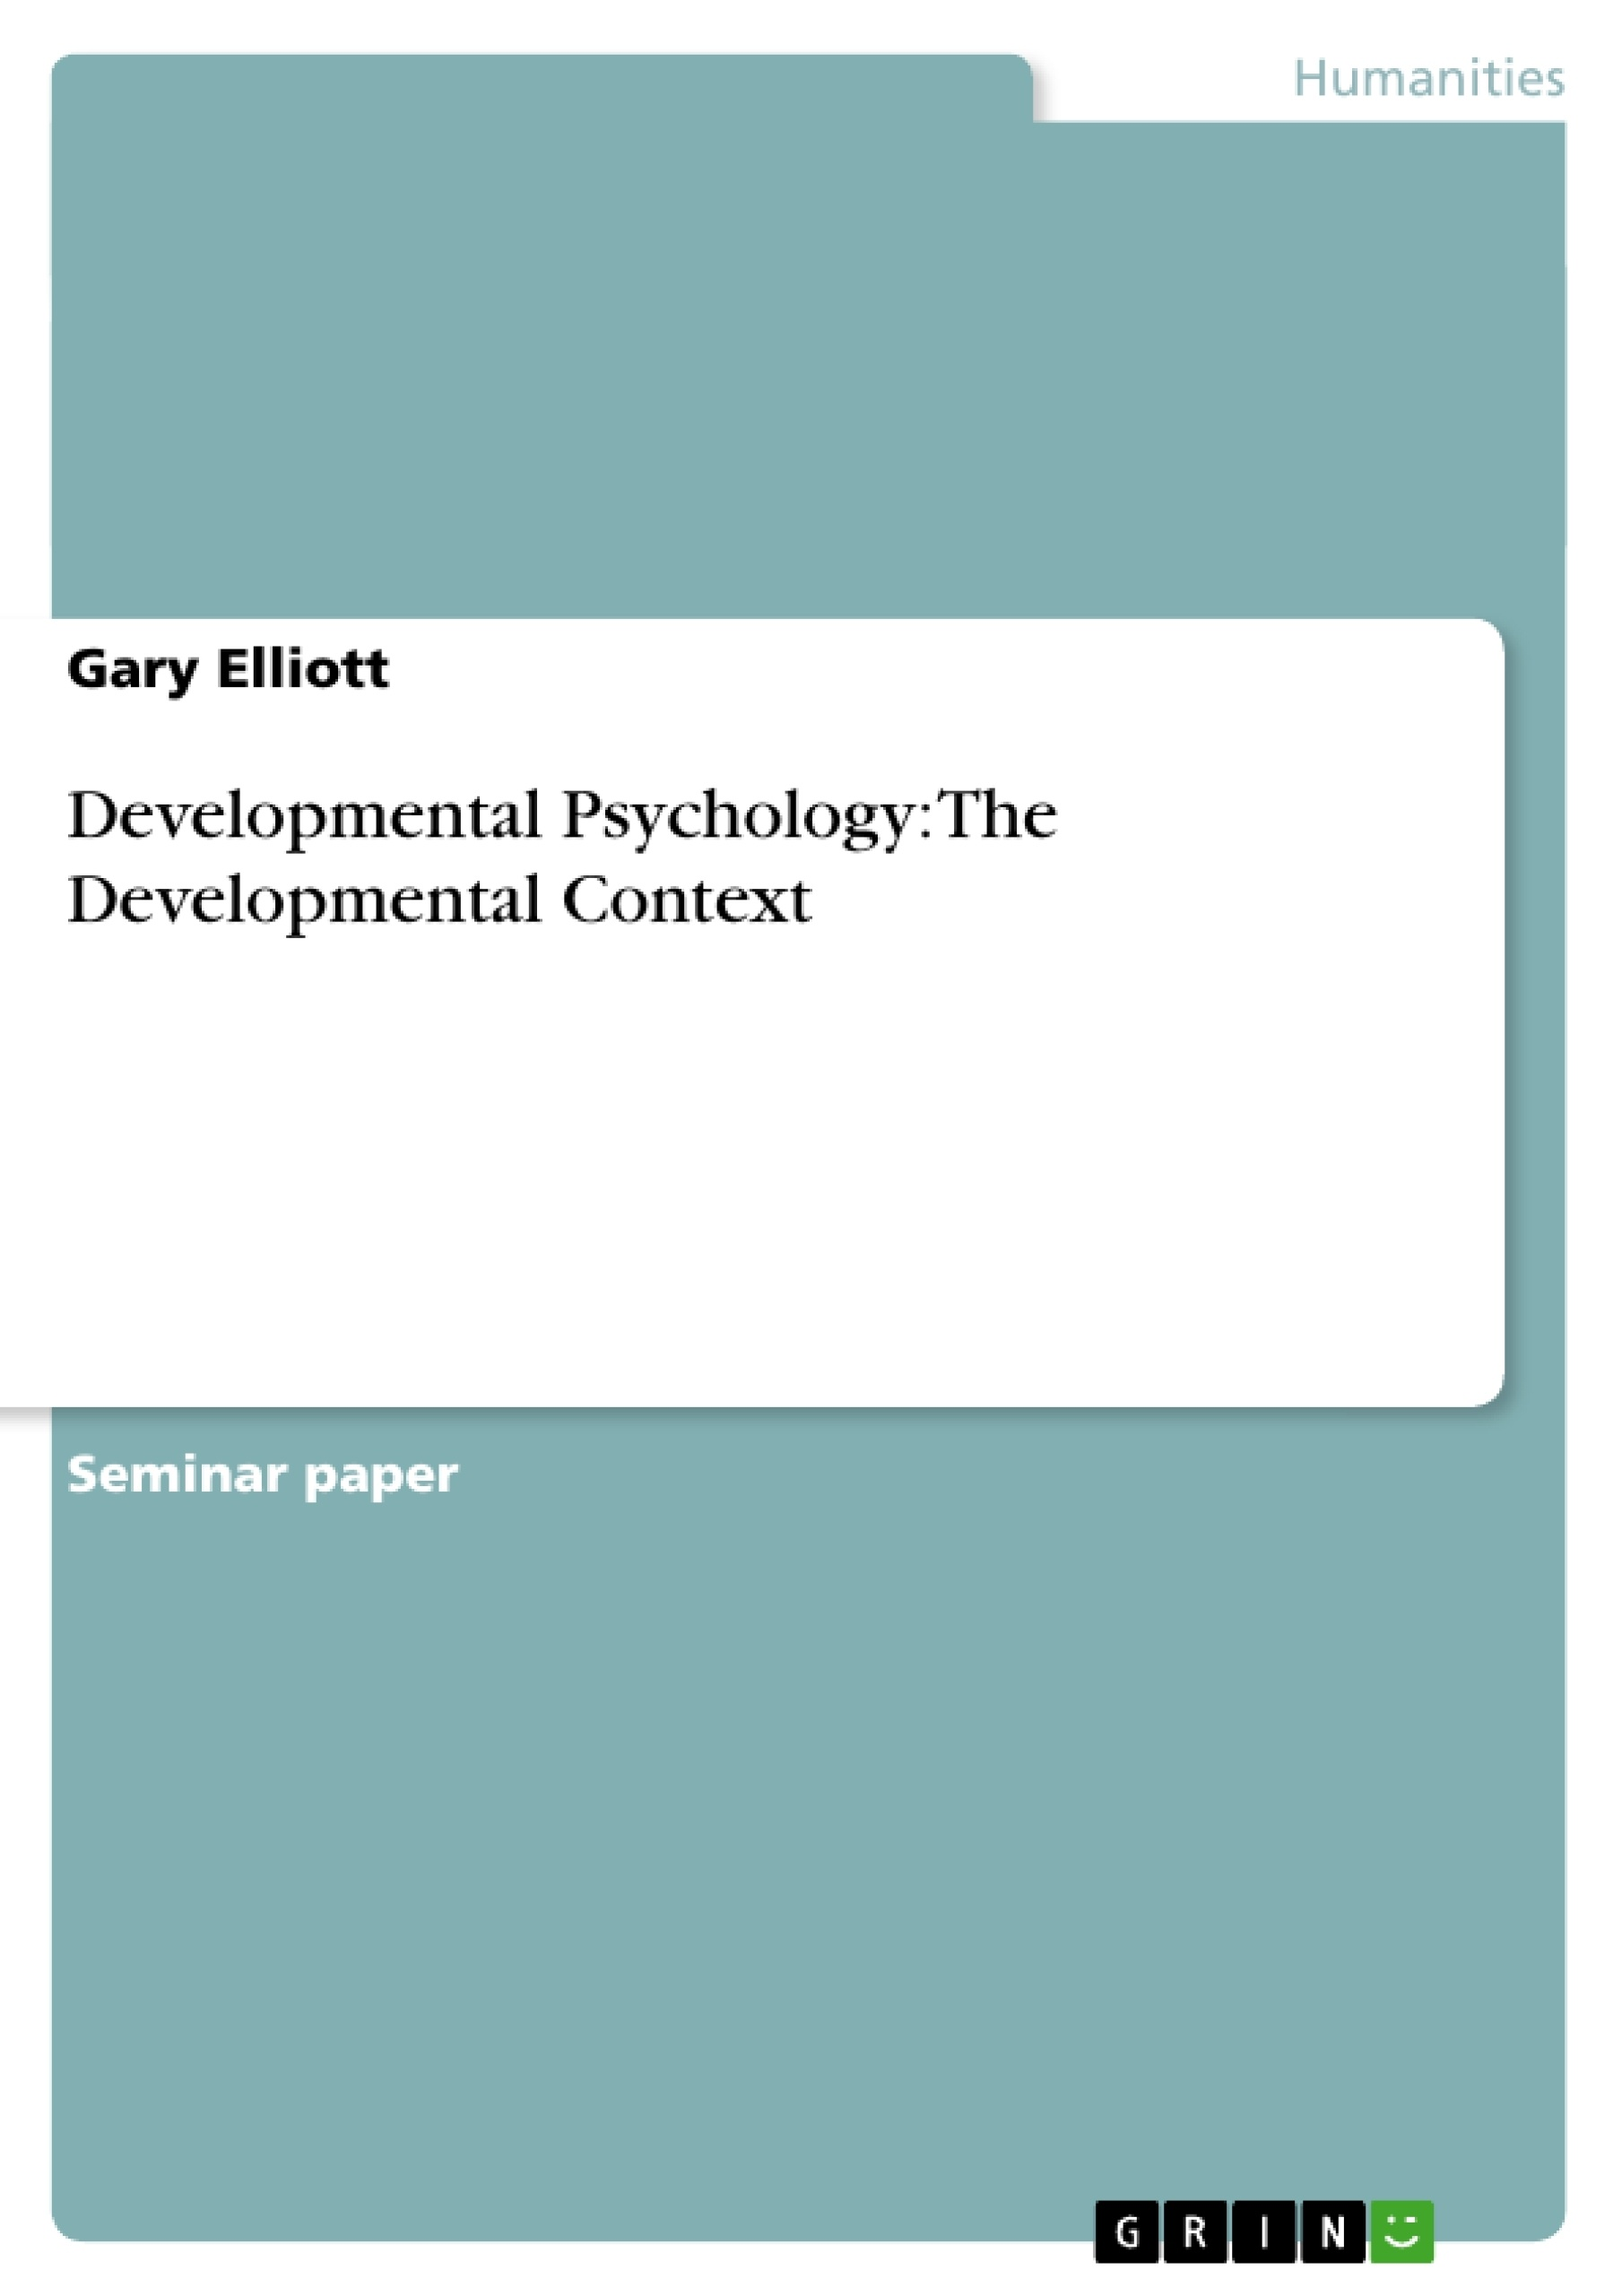 developmental psychology thesis Read this psychology research paper and over 88,000 other research documents developmental psychology history of developmental psychology the modern form of developmental psychology has.